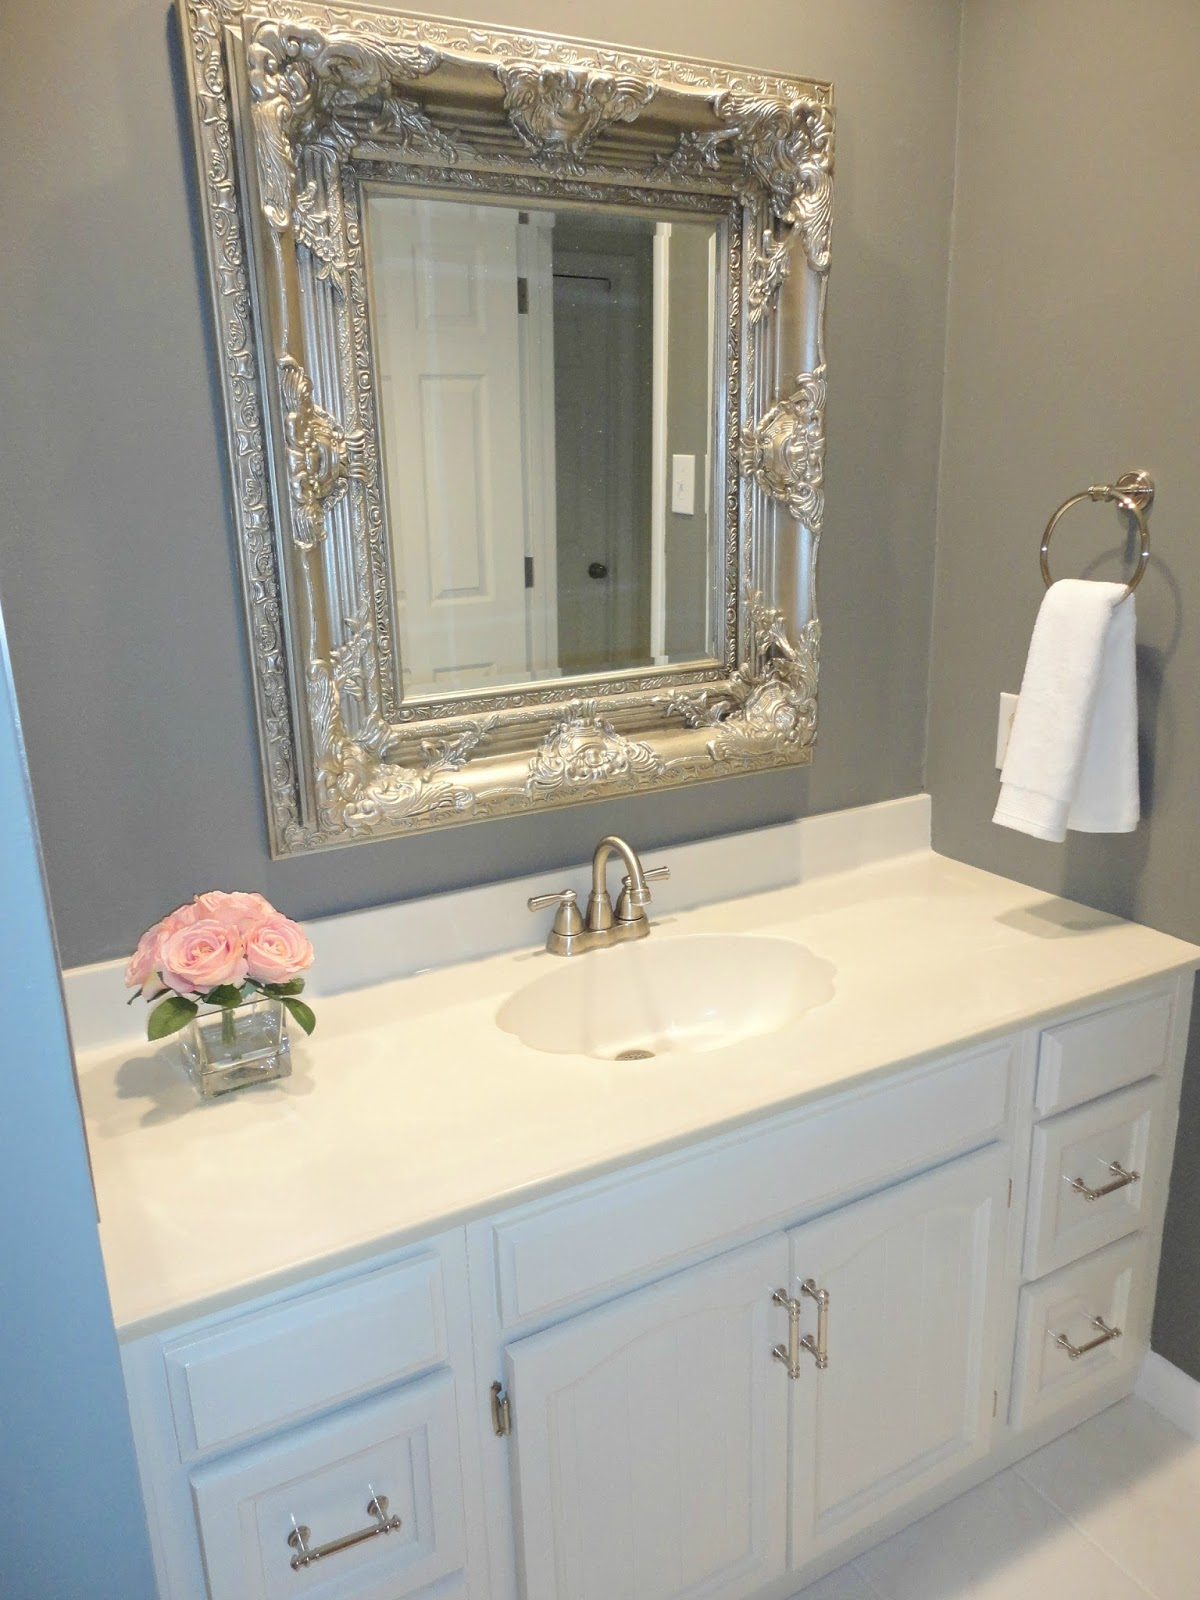 Perfect DIY Bathroom Remodel on a Budget